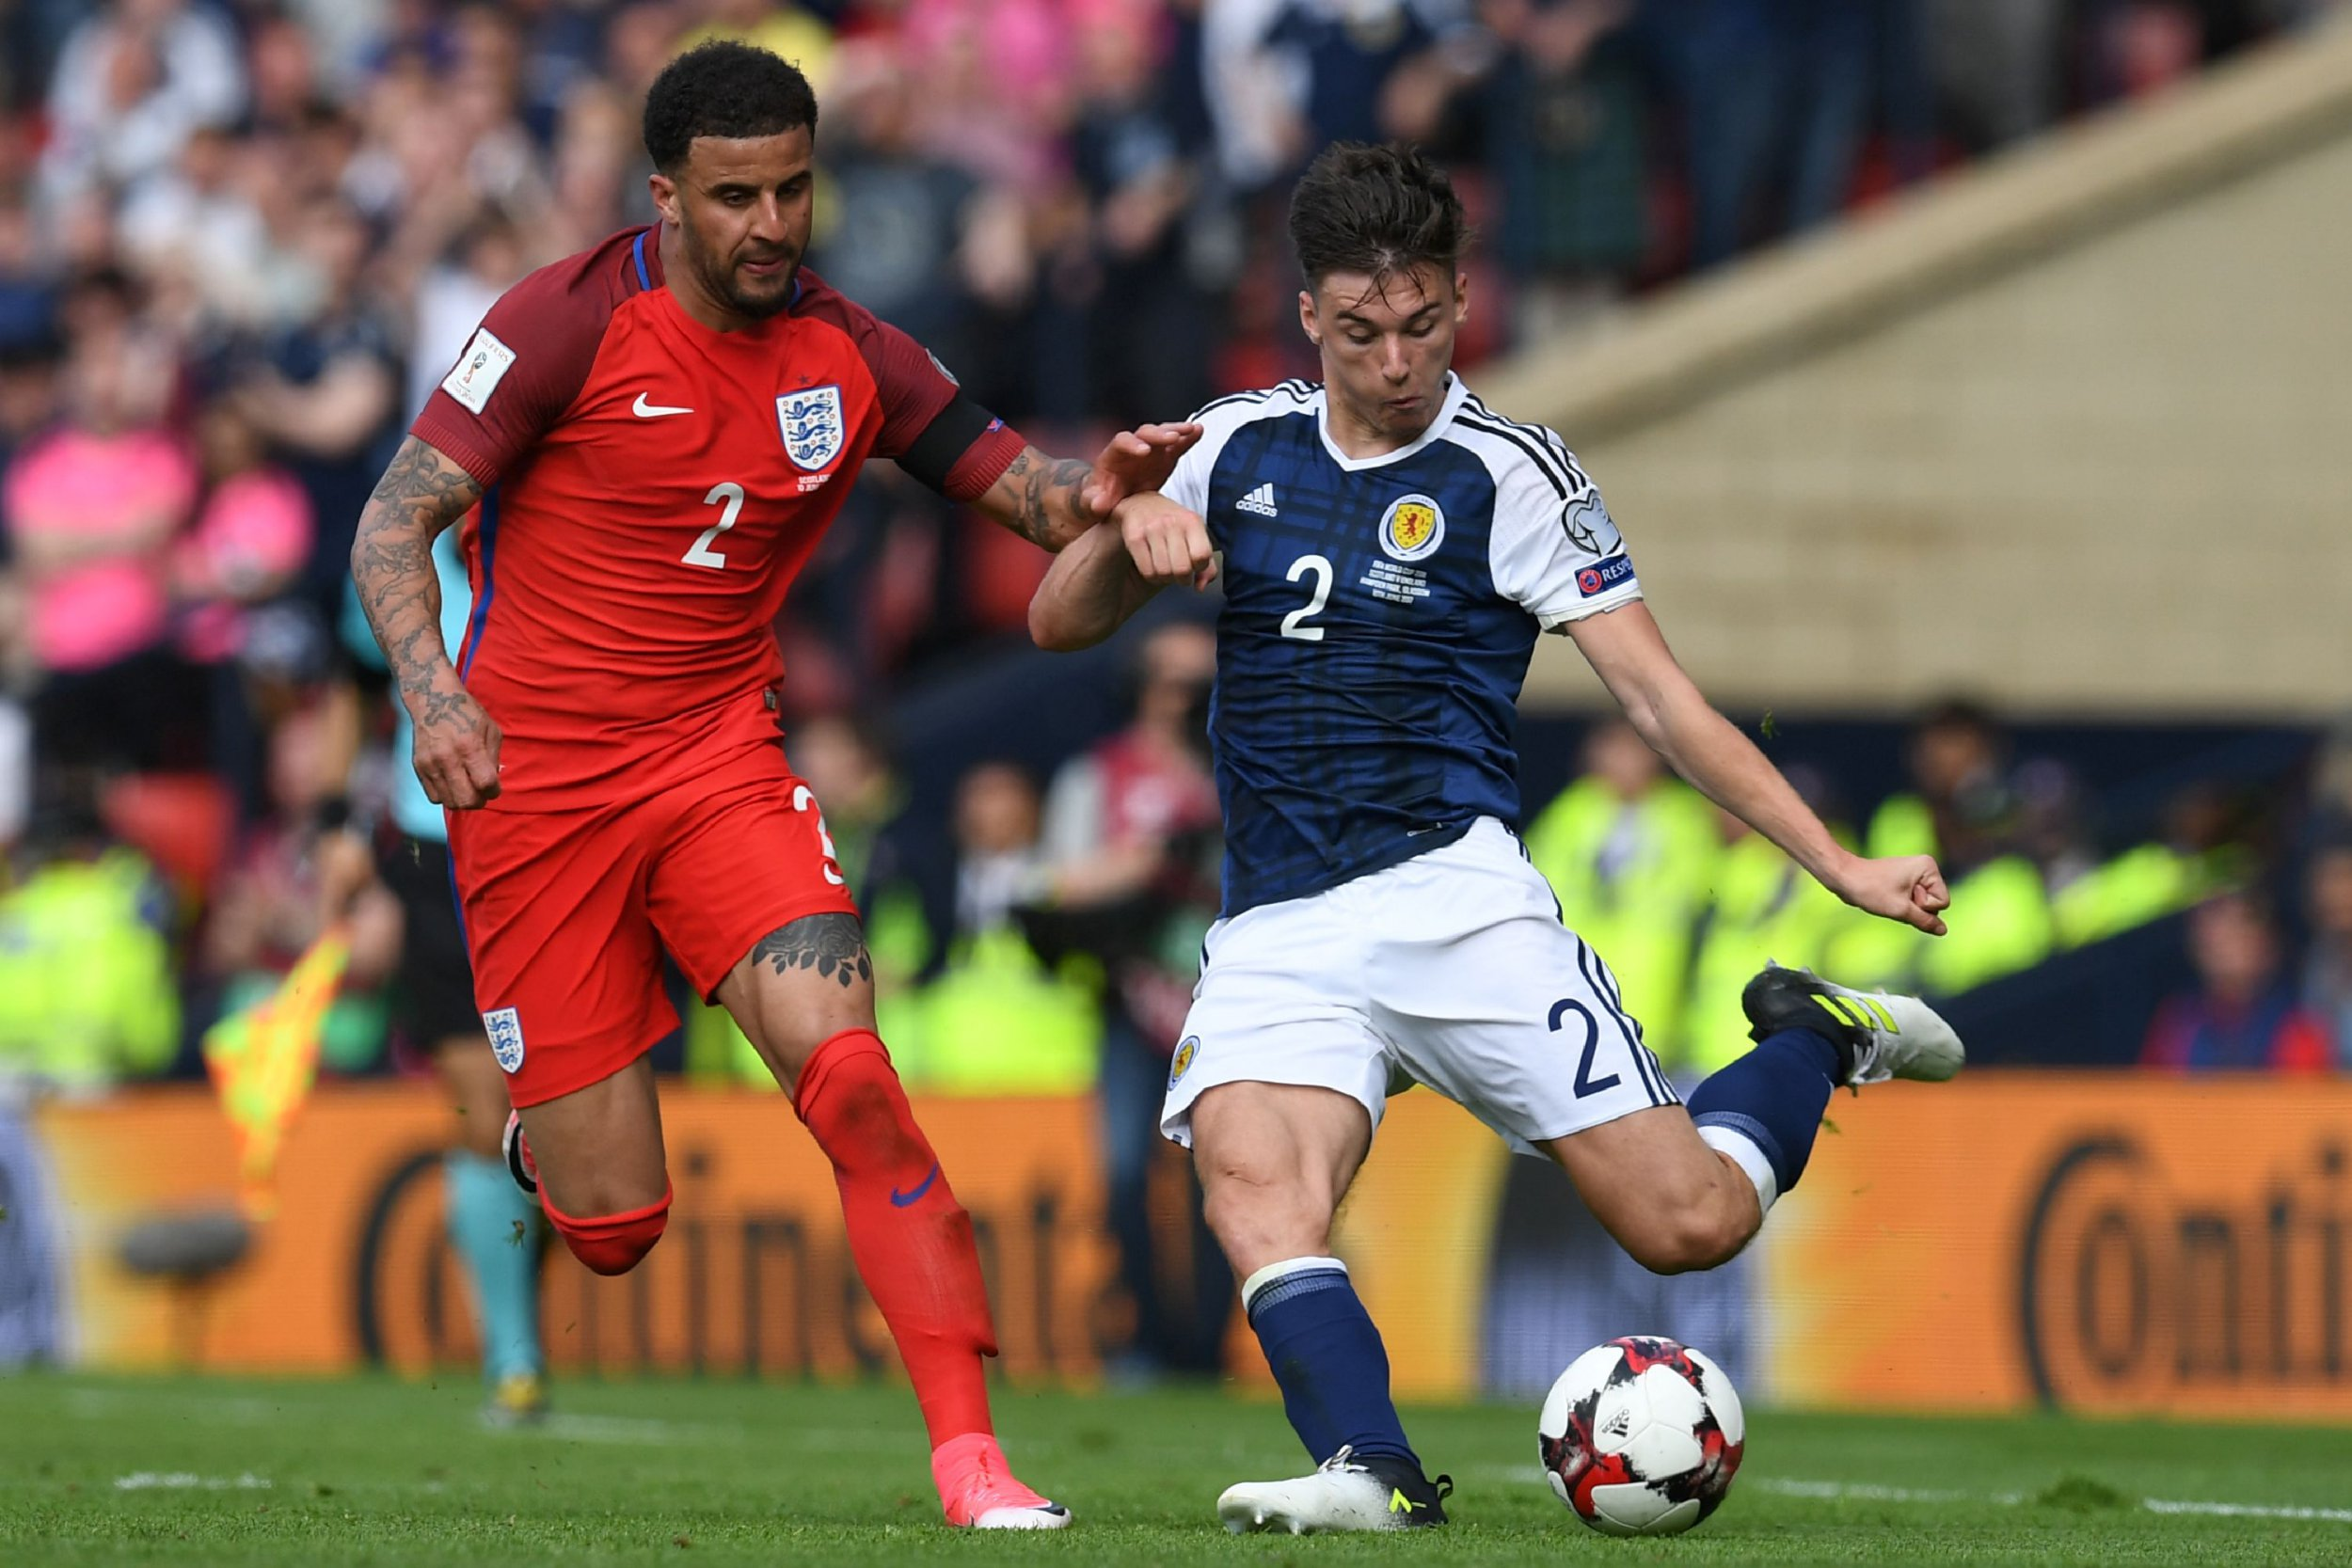 Manchester United sent three scouts to watch Kieran Tierney in England's draw against Scotland